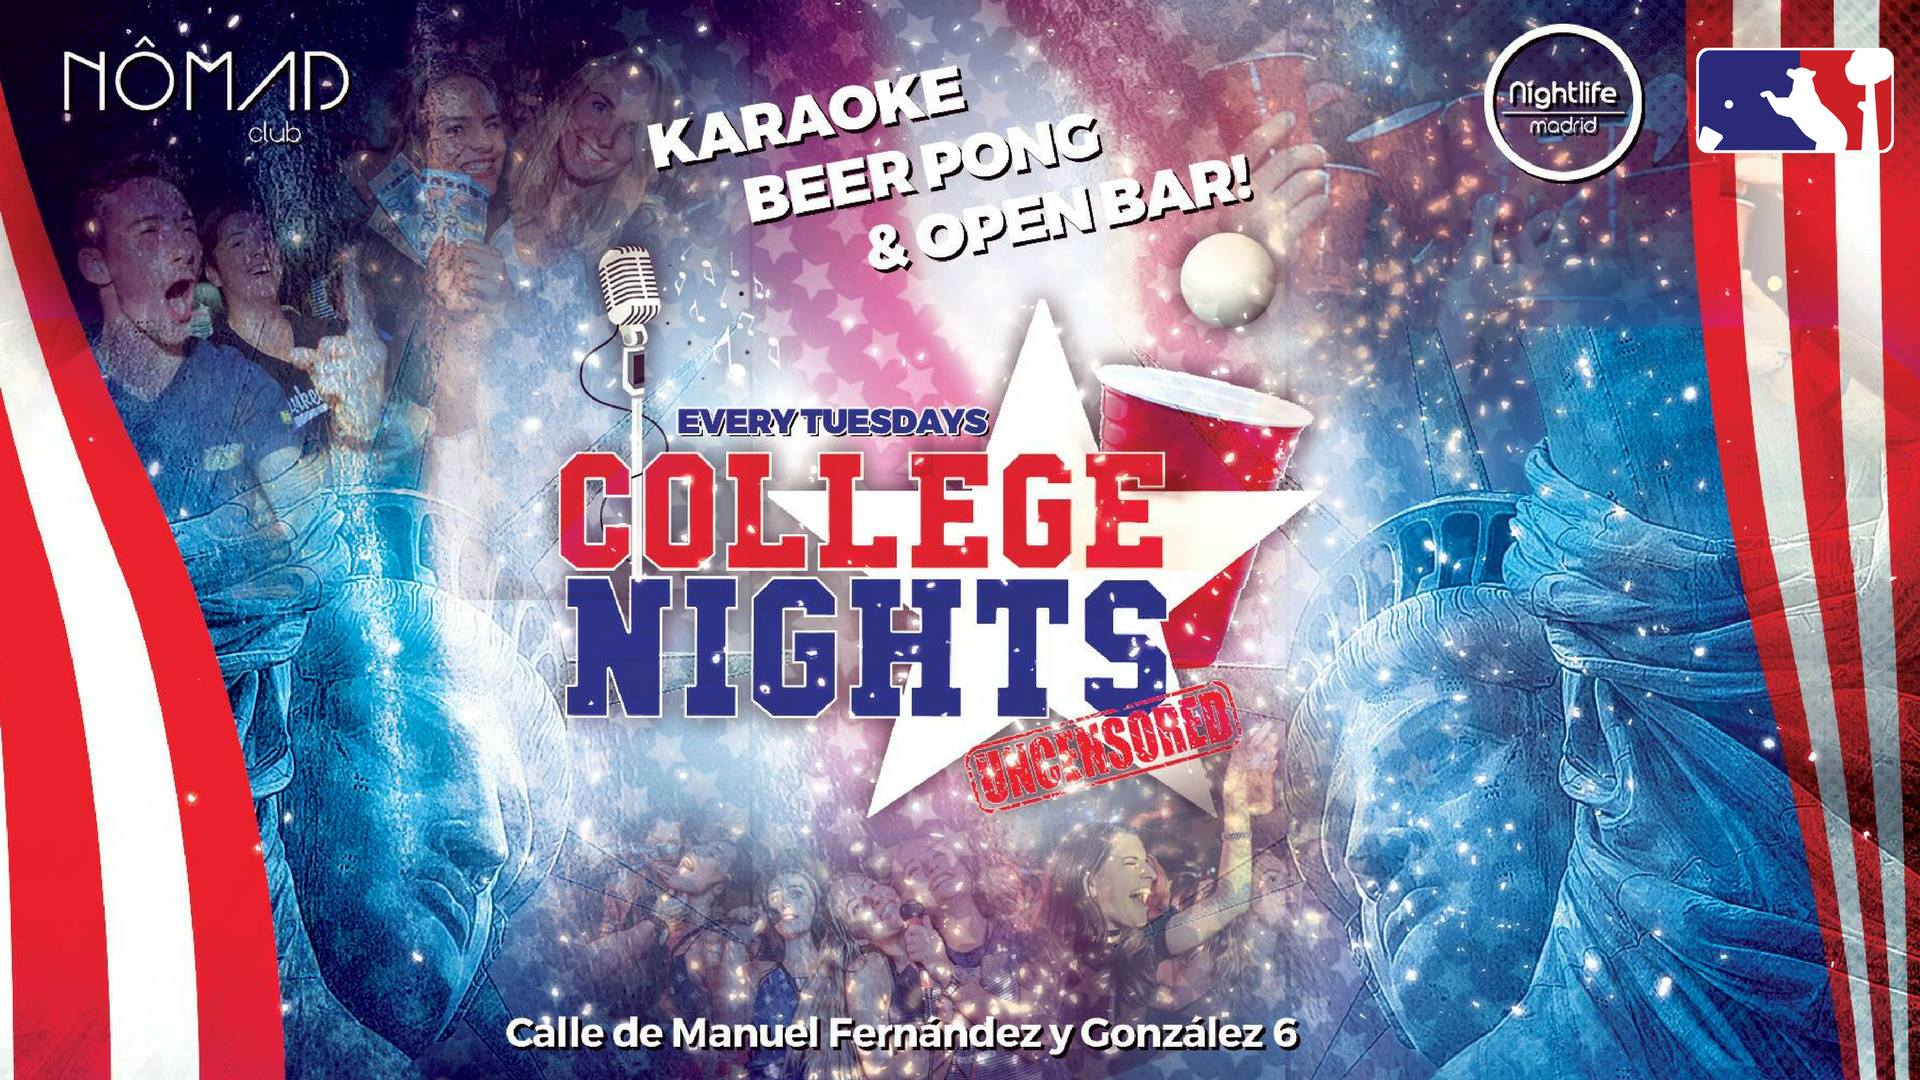 College Nights - Karaoke, Beer Pong & Open Bar - Club Nomad club